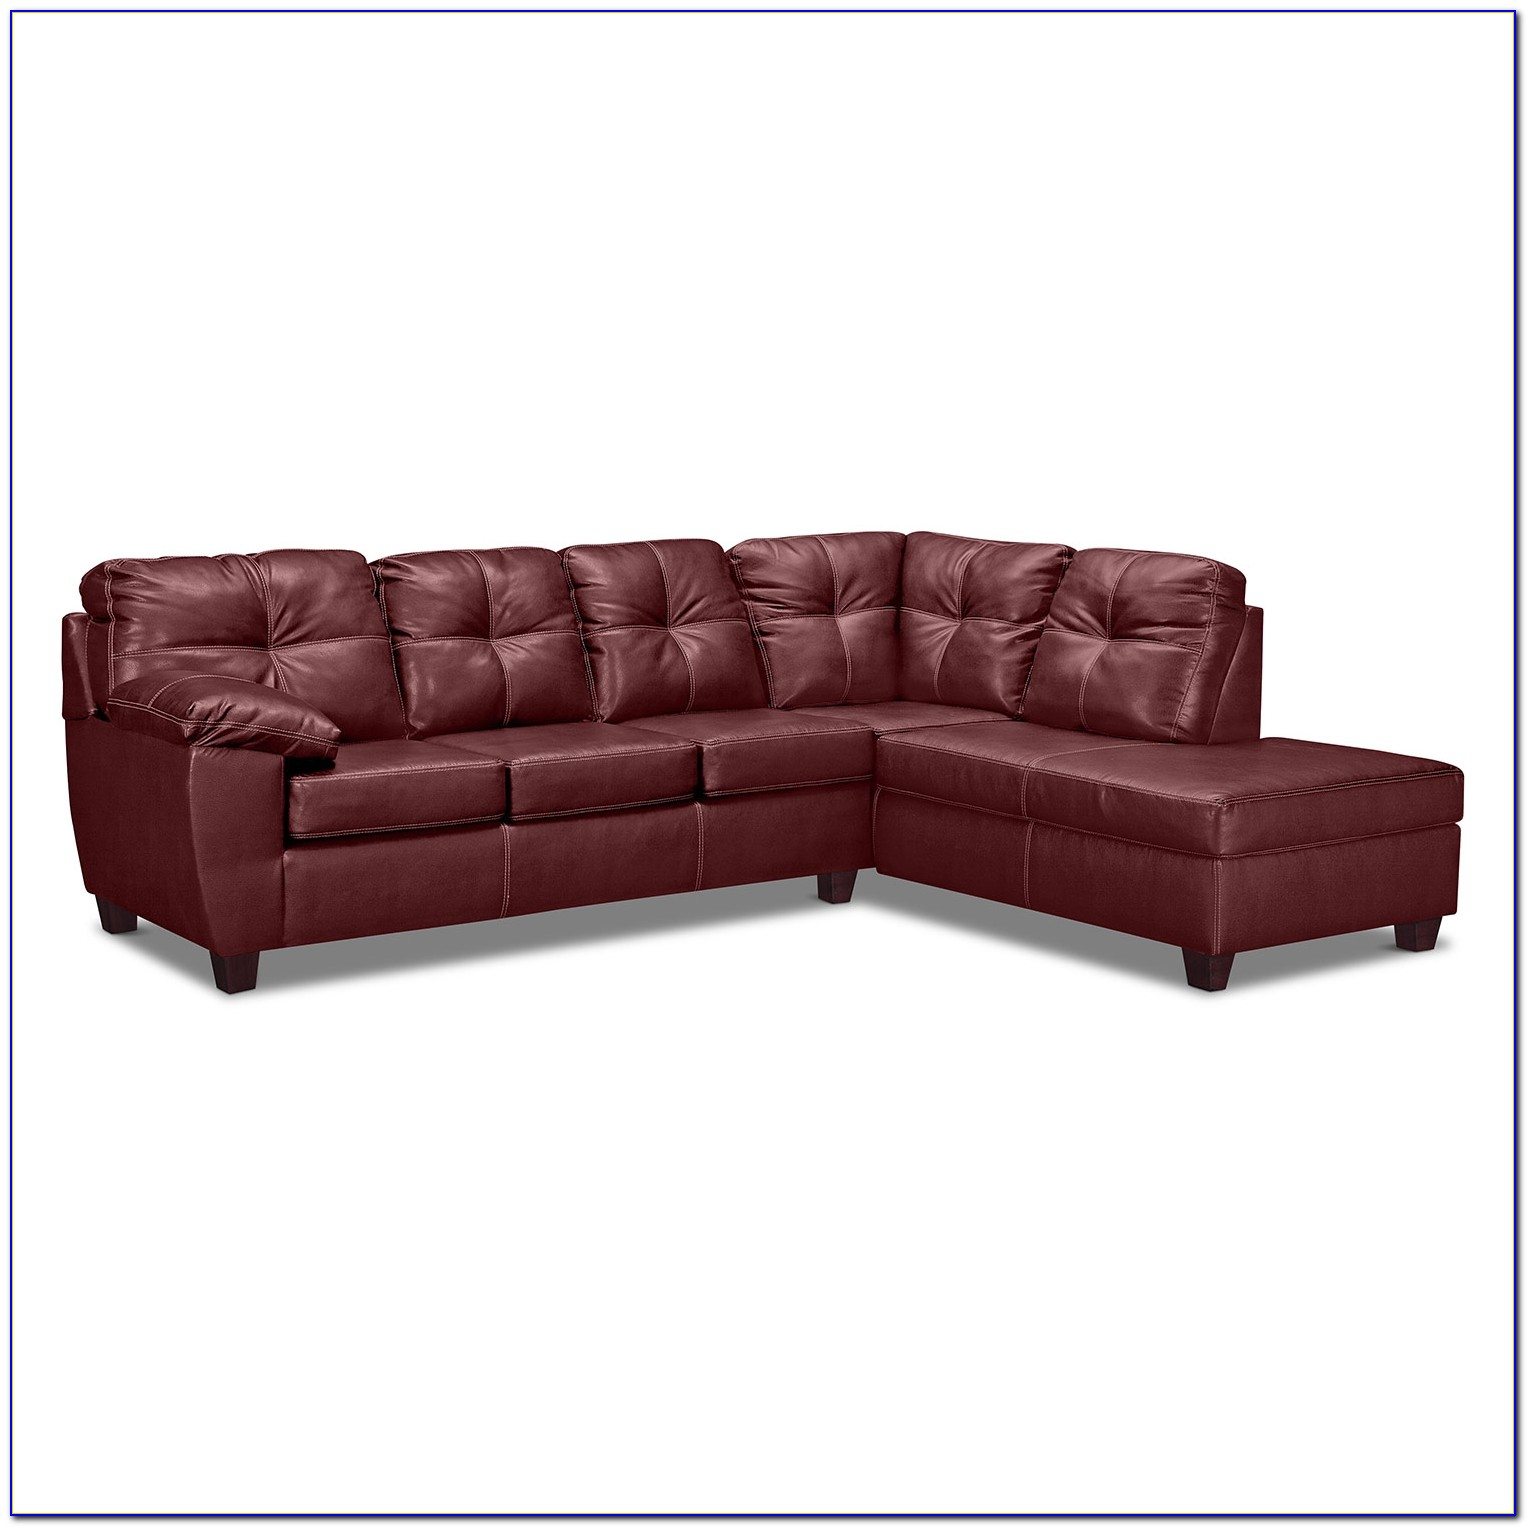 Sleeper Sofa With Chaise Lounger